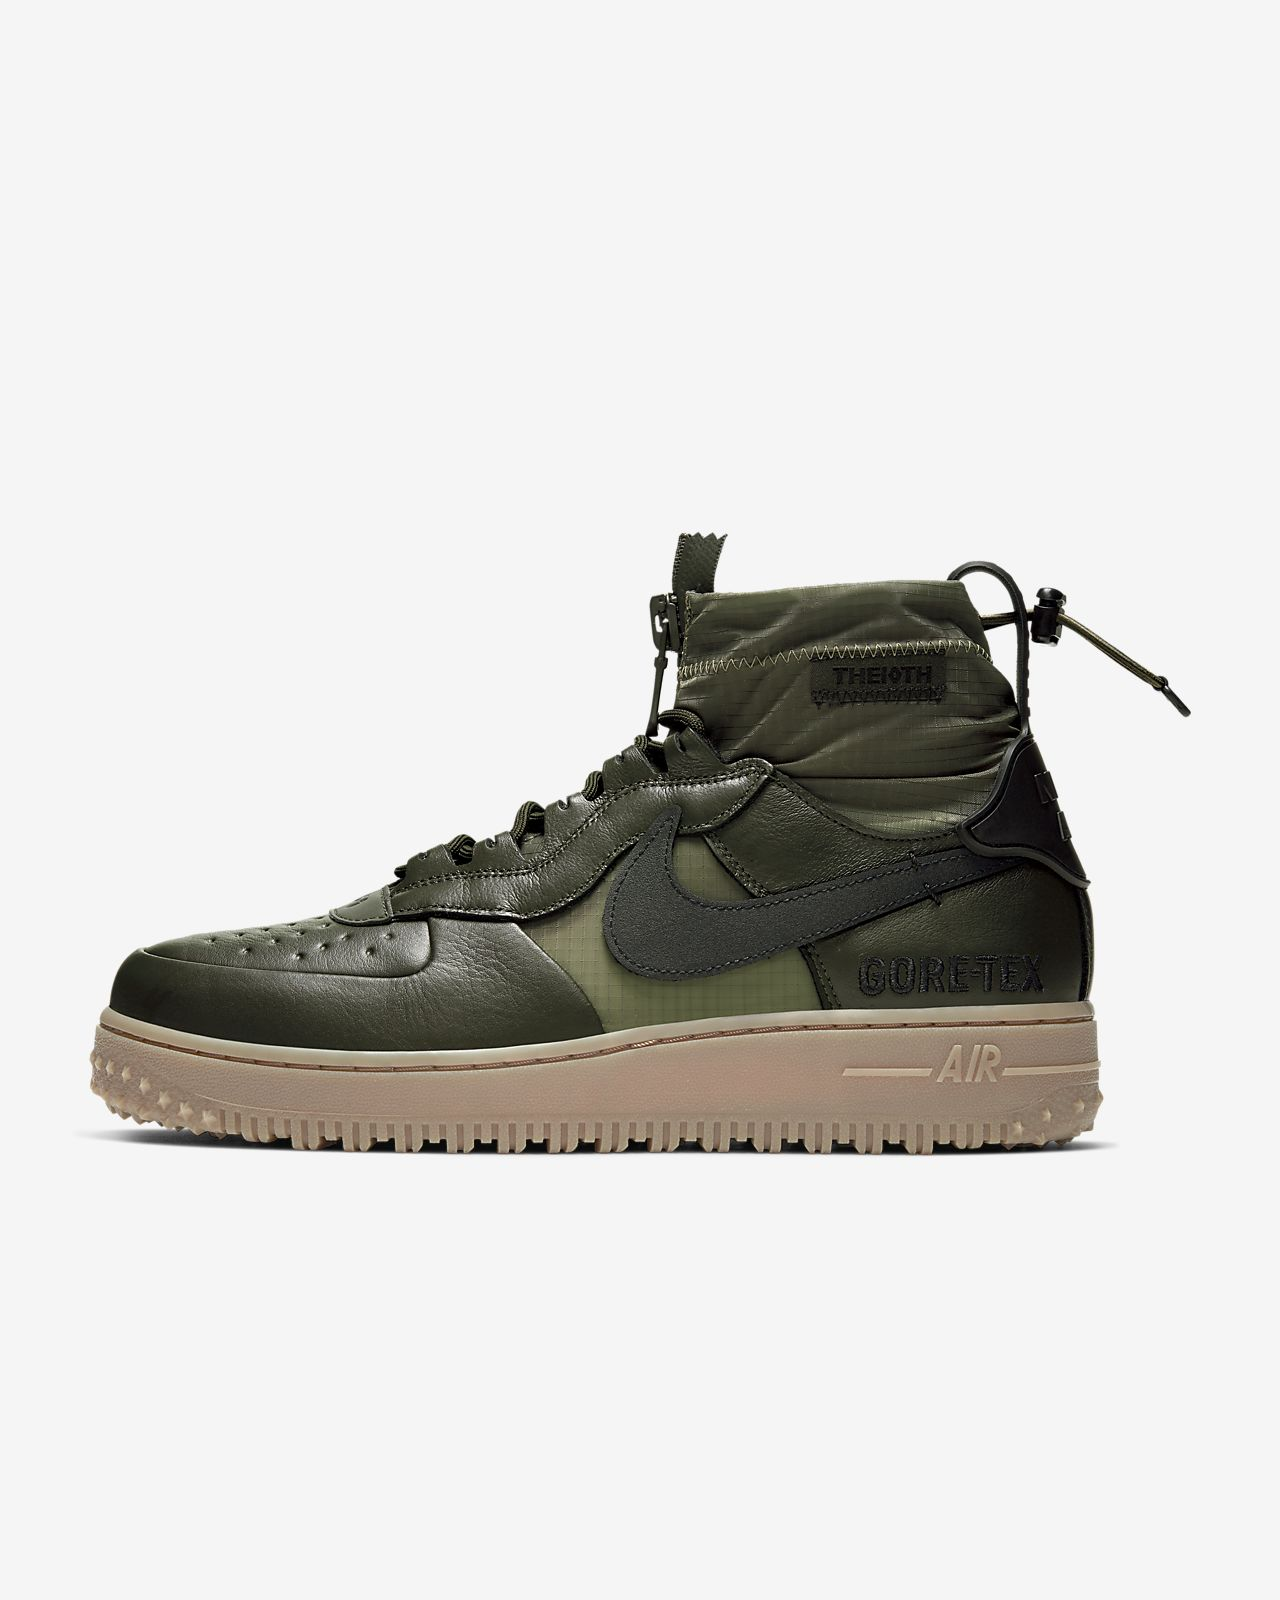 Botte Nike Air Force 1 Winter GORE TEX